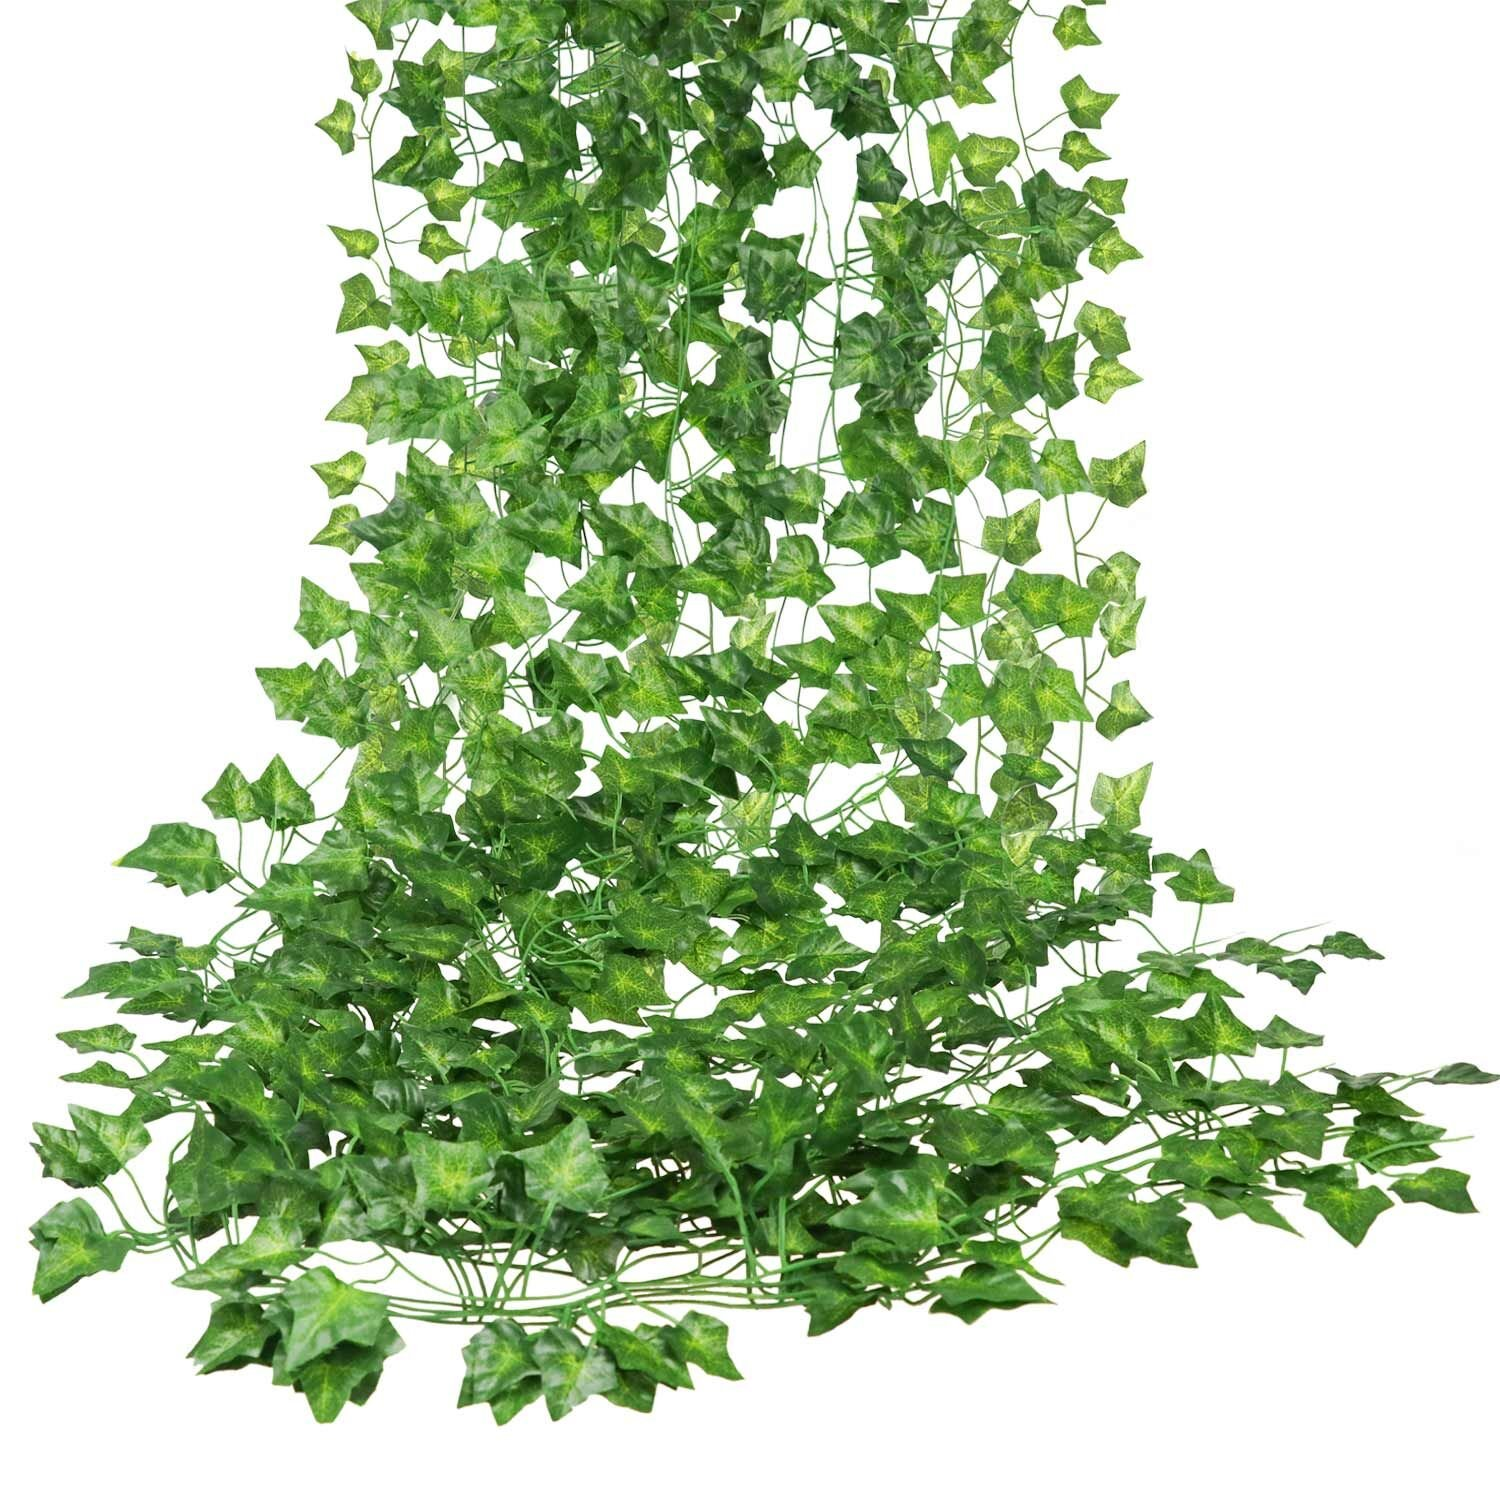 E-HAND Artificial Hanging Vine Leaf Garland Ivy Flower Fake Silk Leaves Greenery Wedding Kitchen Wall Garden Foliage Home Outdoor Party Festival Decor Wholesale 84 Ft